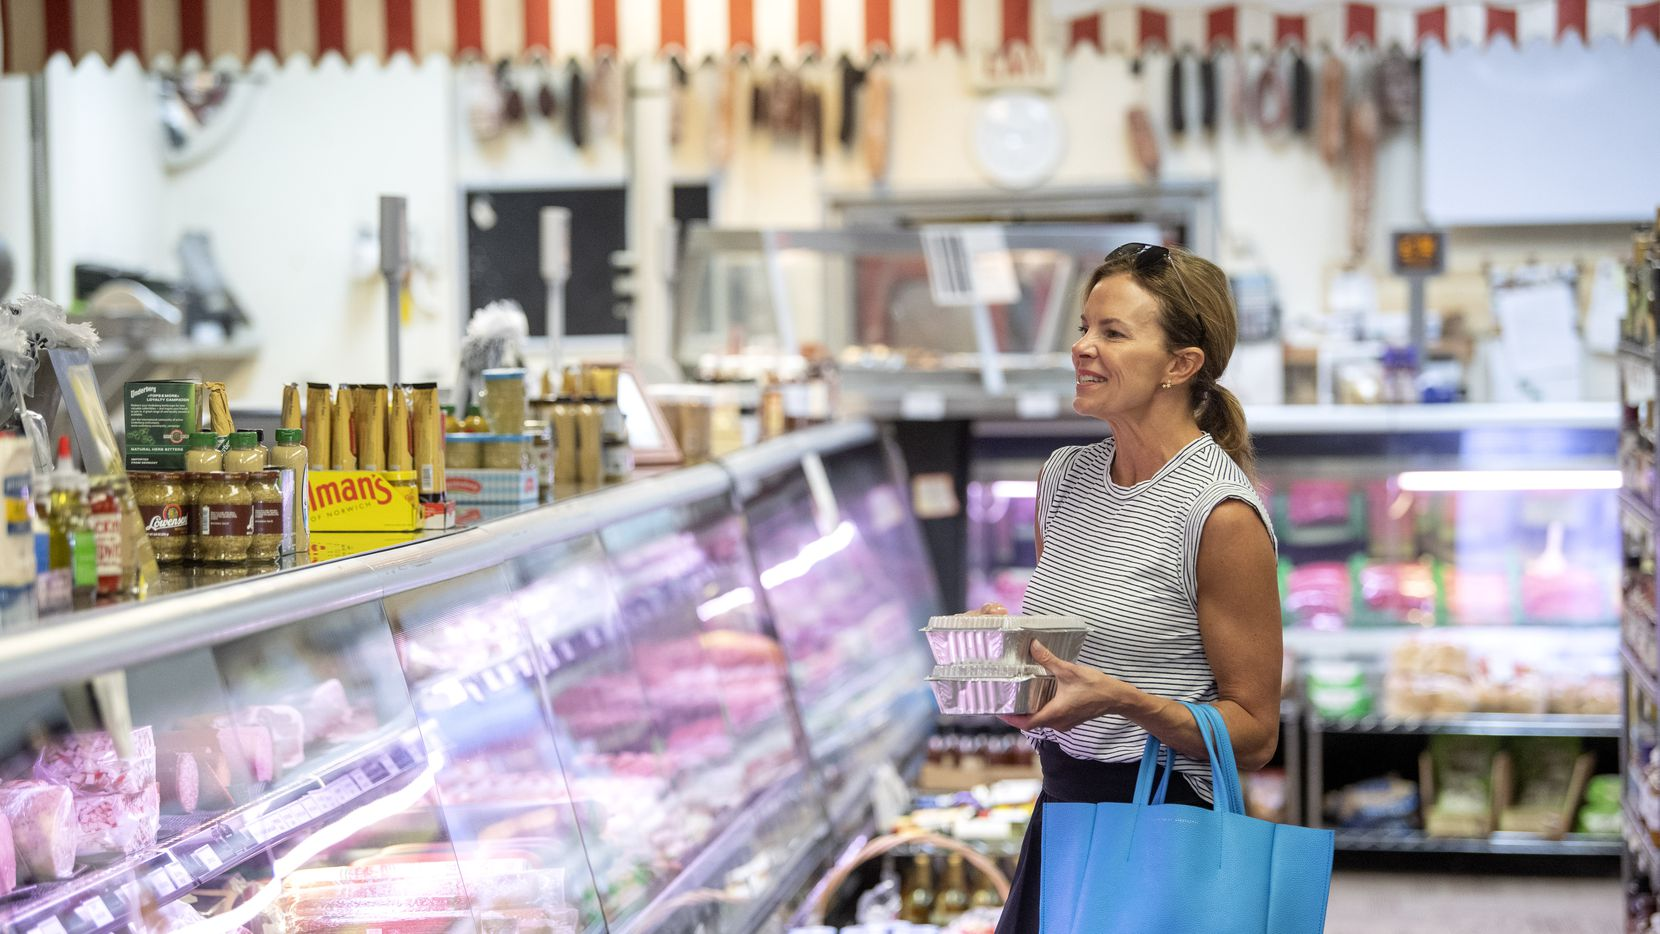 Kristi Pierce of University Park checked out the meat counter at Kuby's Sausage House and European Market on March 24 in Dallas. While Kuby's temporarily closed its restaurant, it kept the market half of the store open for neighbors in search of staples like fresh produce, milk and even toilet paper.